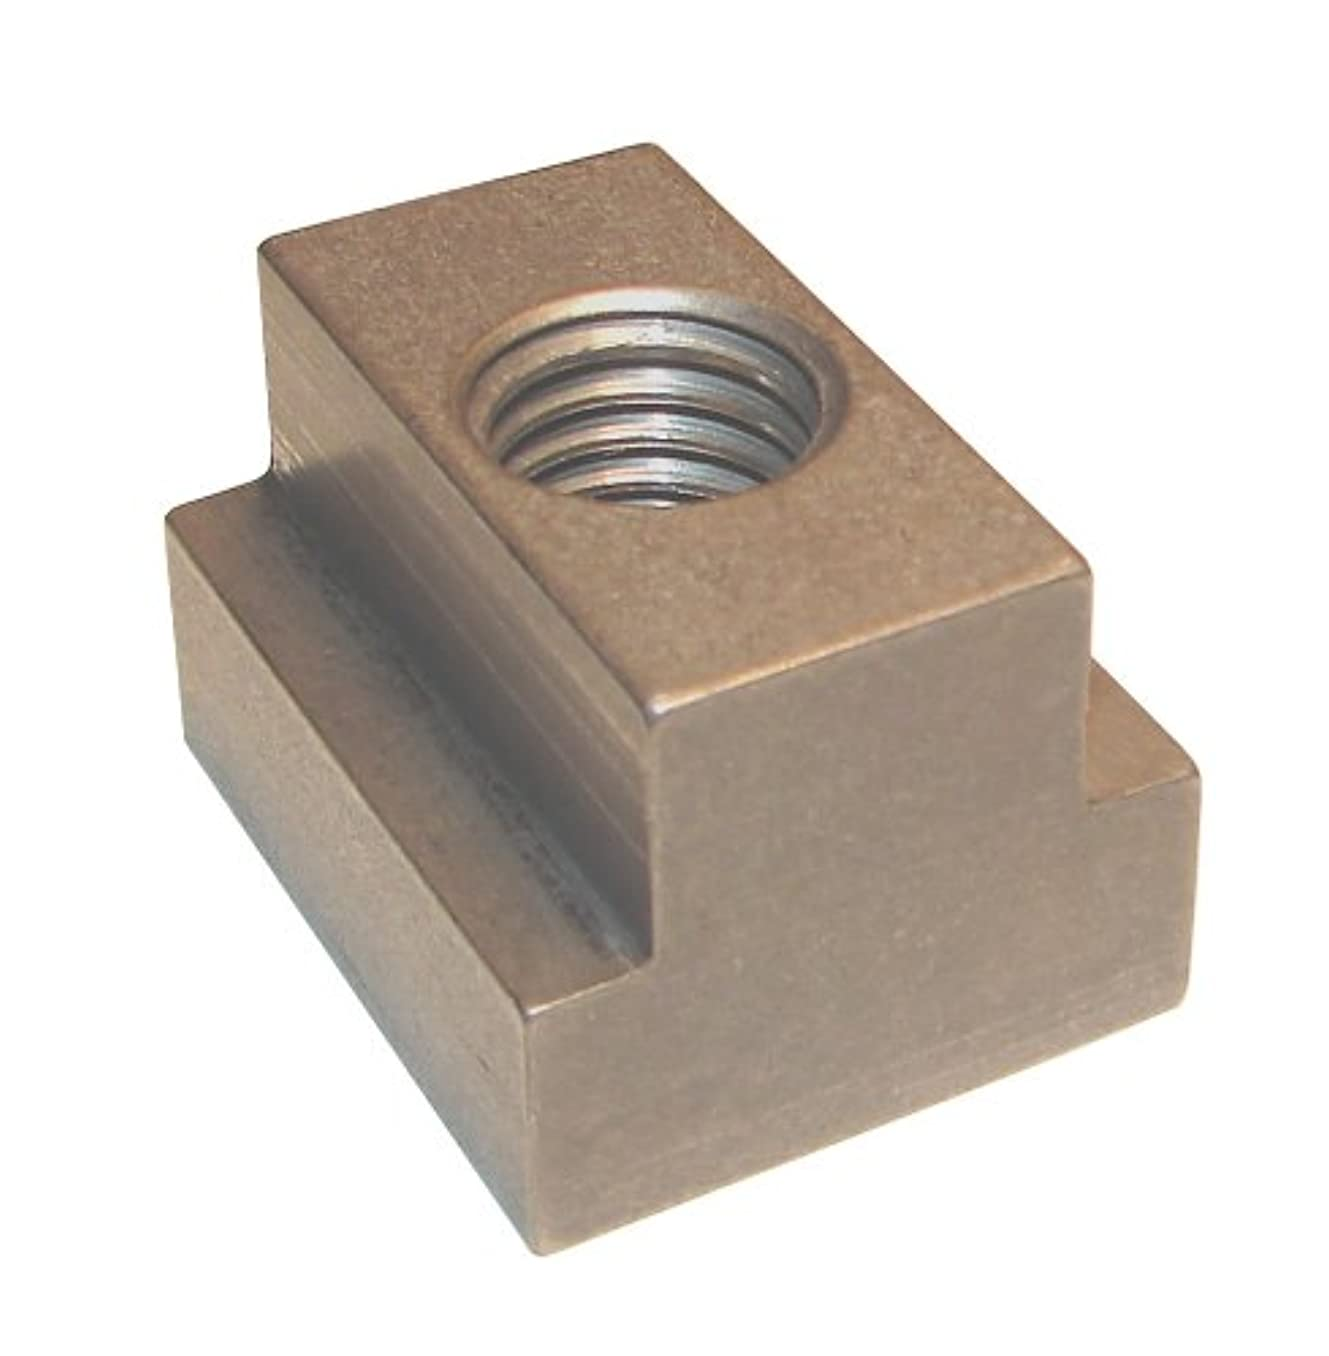 Morton Stainless Steel T-Slot Nuts, Inch Size, 3/8-16 Thread Size, 1/2